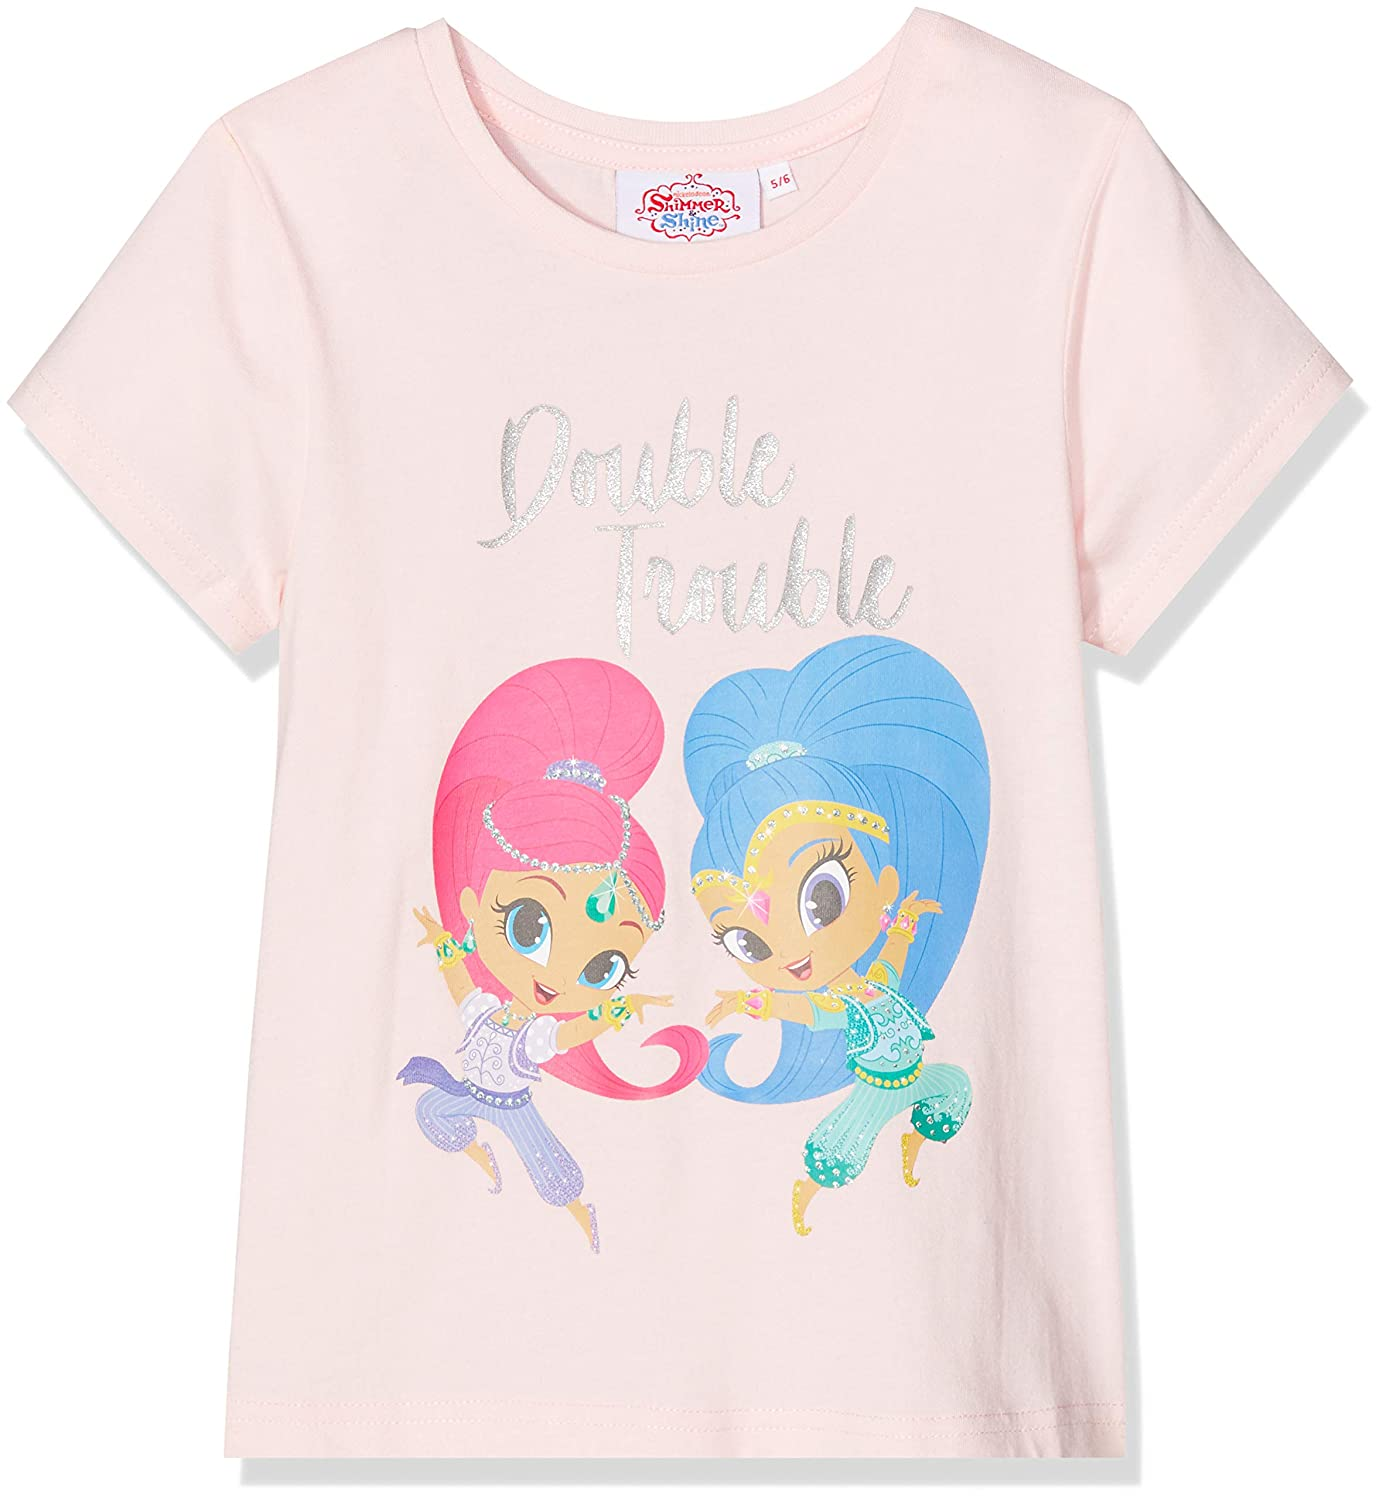 Pink Shimmer /& Shine Girls Double Trouble T-Shirt